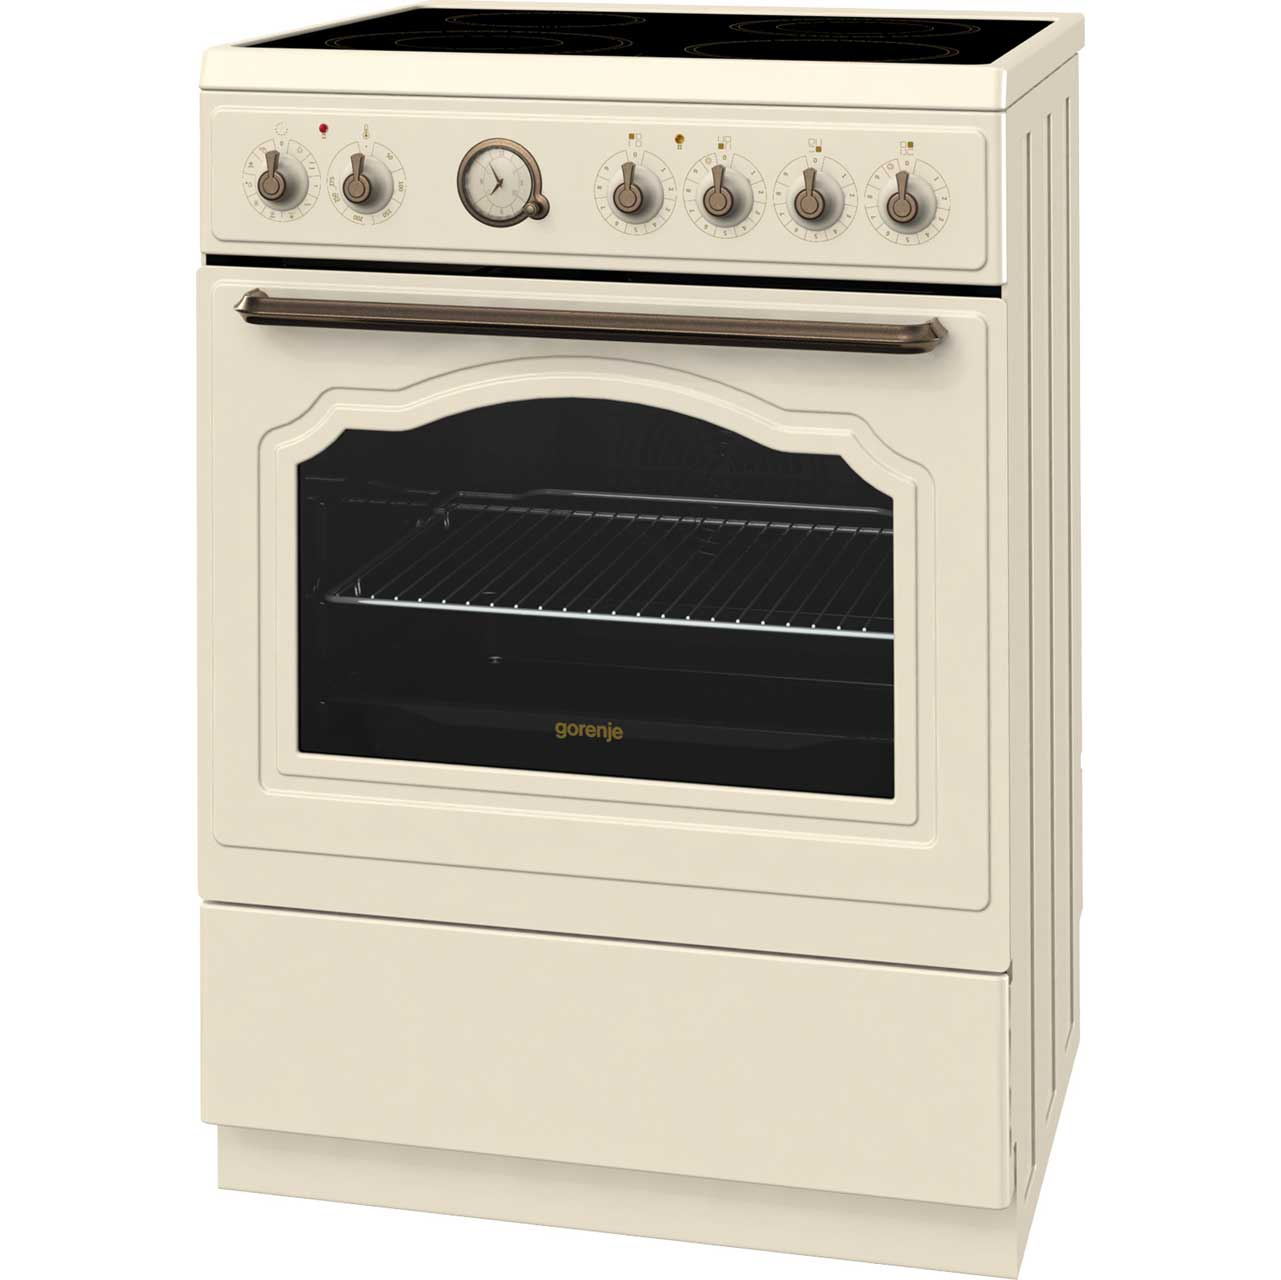 Baumatic Bce625iv Free Standing Cooker In Ivory